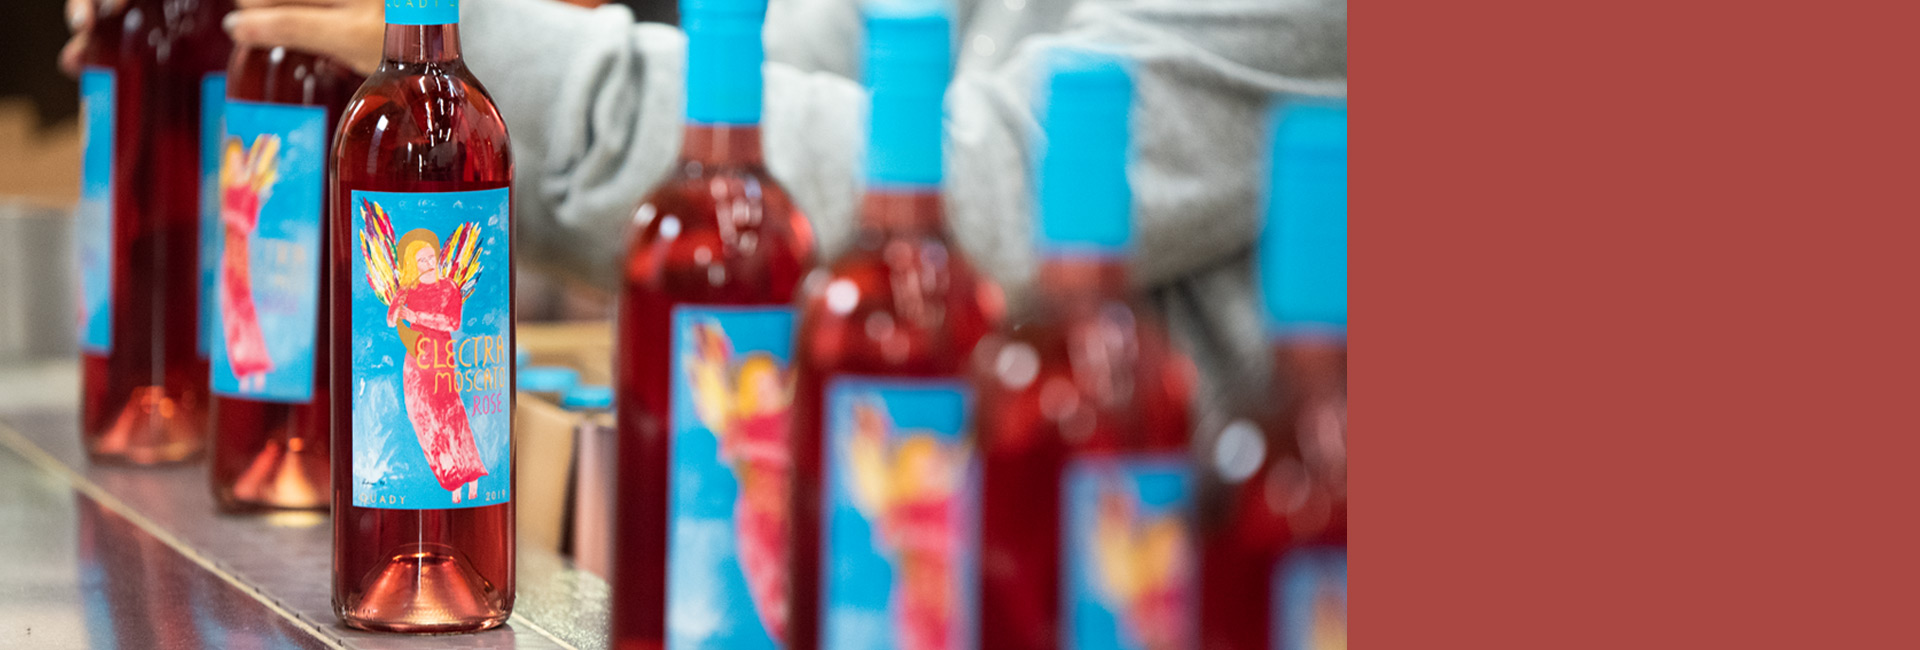 Website header showing picture of 2019 vintage Electra Moscato Rose on the bottling line being packed into wine case boxes.